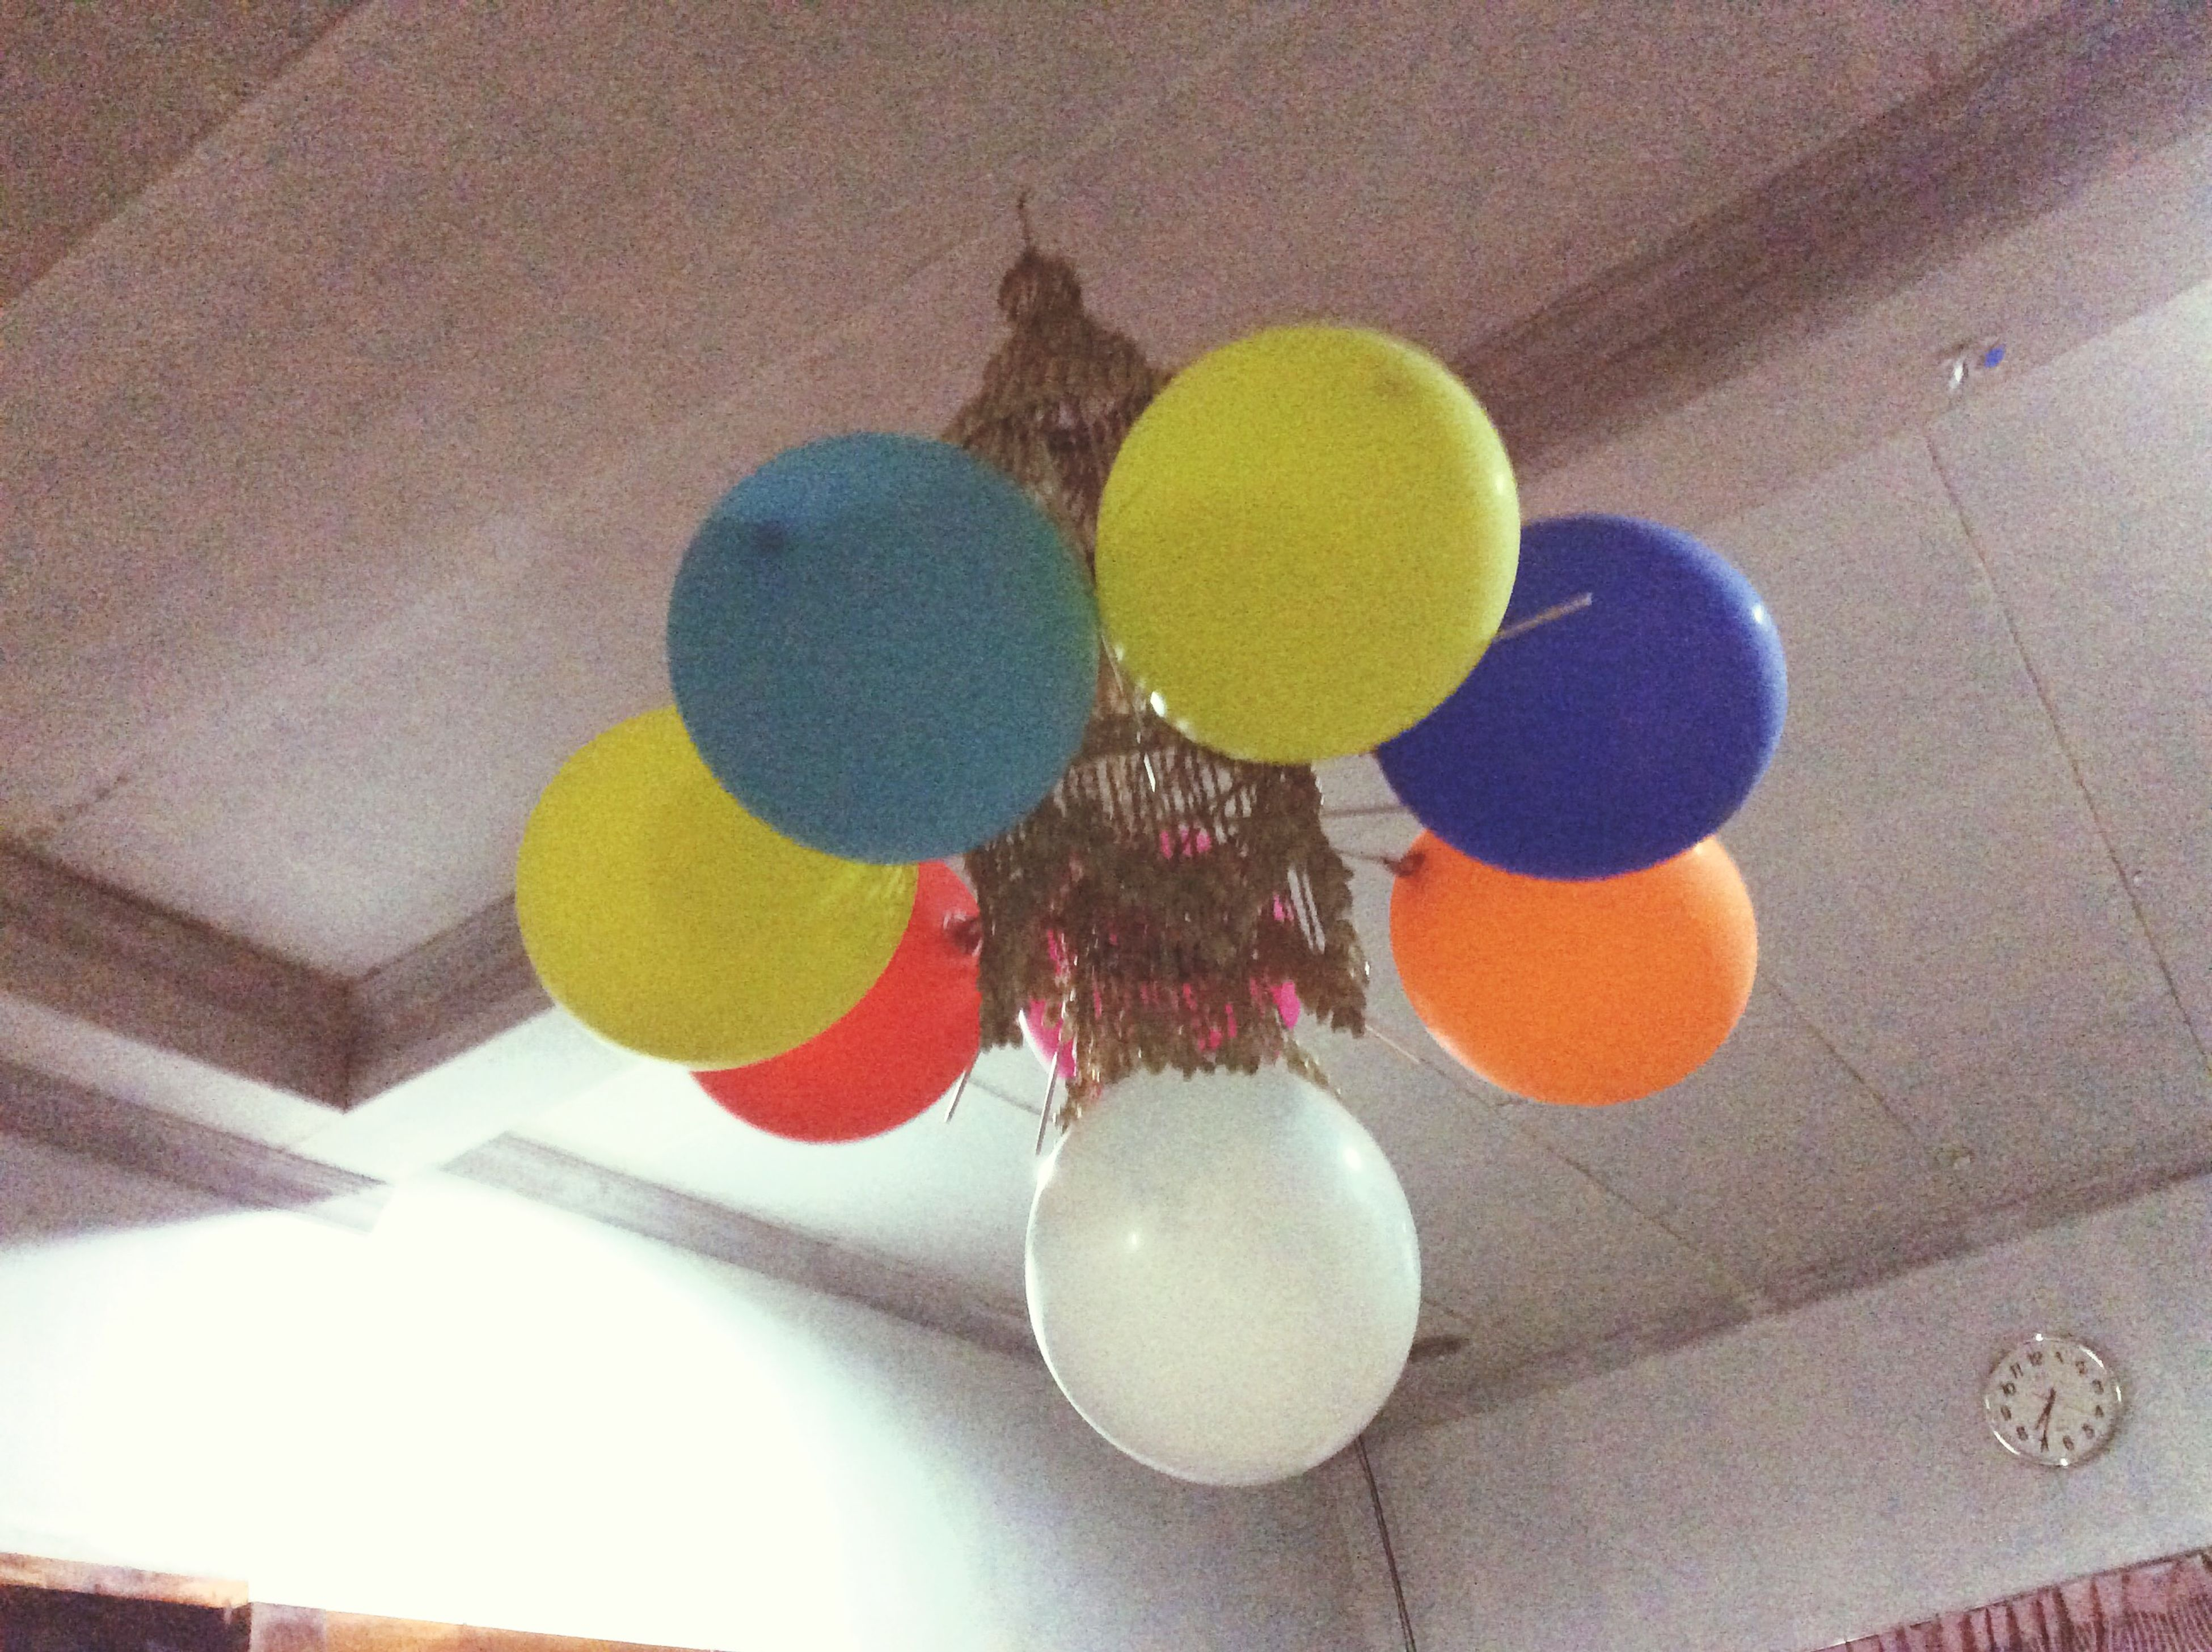 indoors, decoration, multi colored, table, still life, high angle view, variation, celebration, home interior, hanging, no people, wall - building feature, yellow, flooring, art and craft, arrangement, creativity, art, balloon, colorful